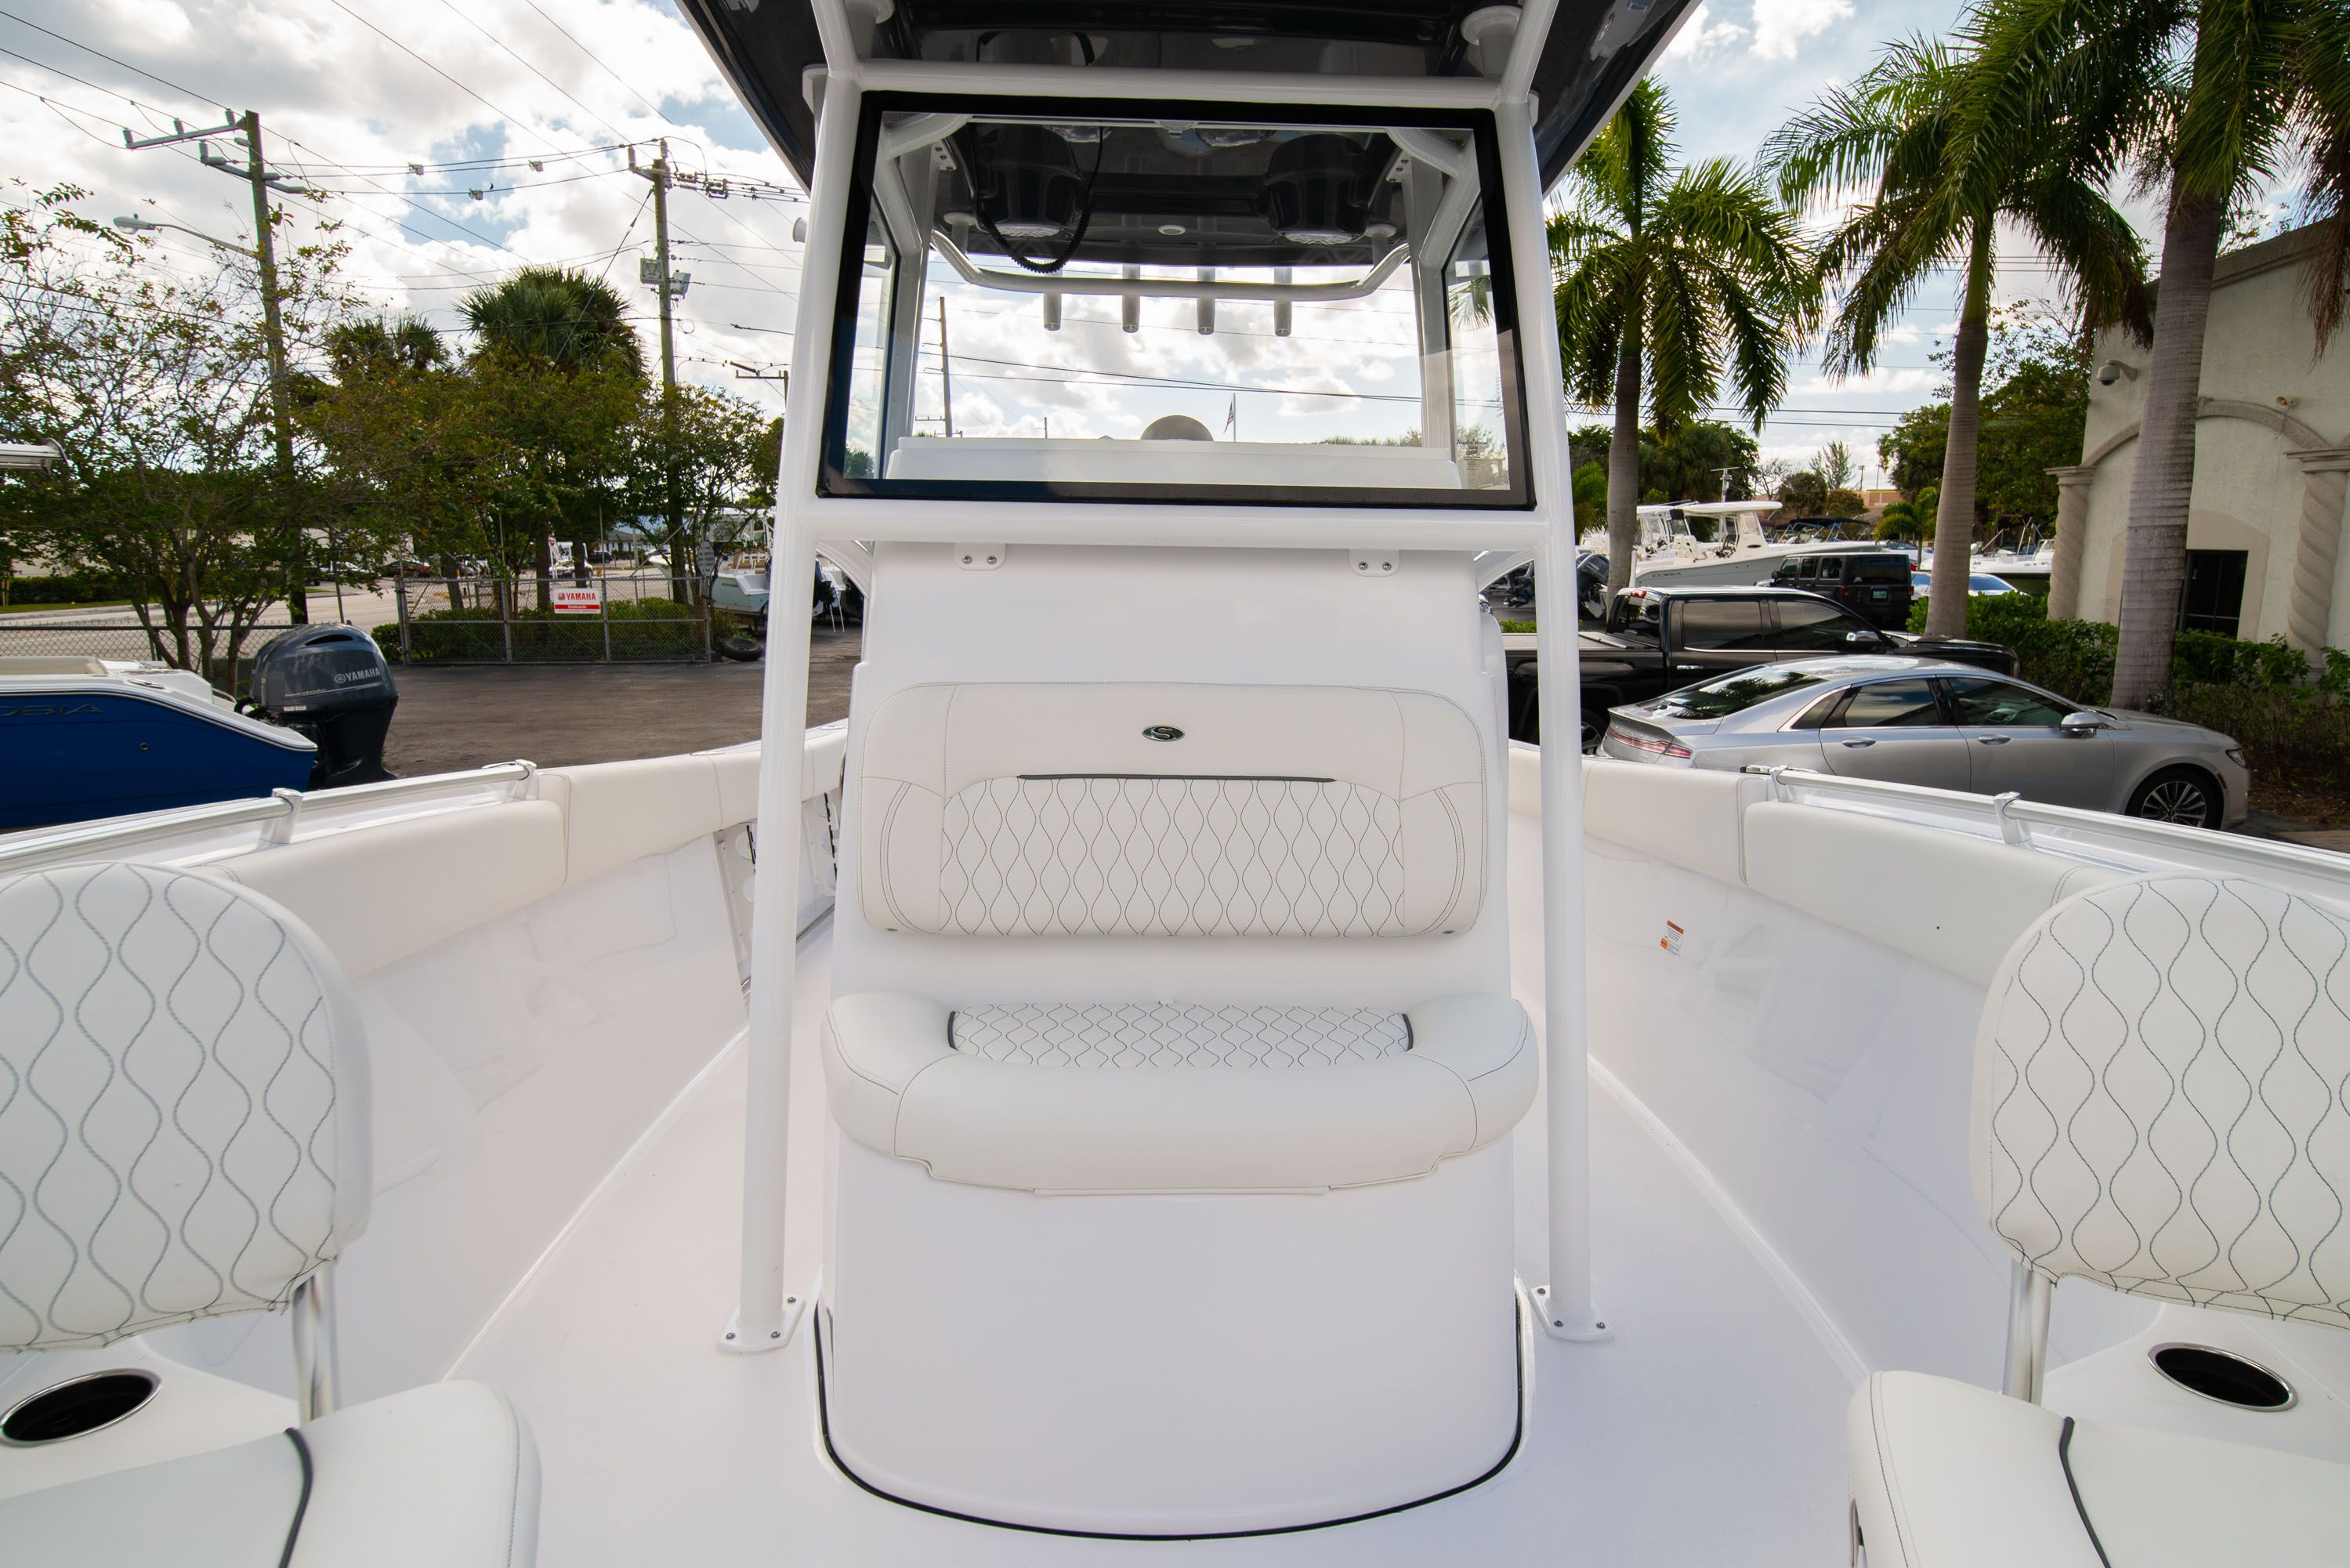 Thumbnail 45 for New 2020 Sportsman Heritage 251 Center Console boat for sale in West Palm Beach, FL